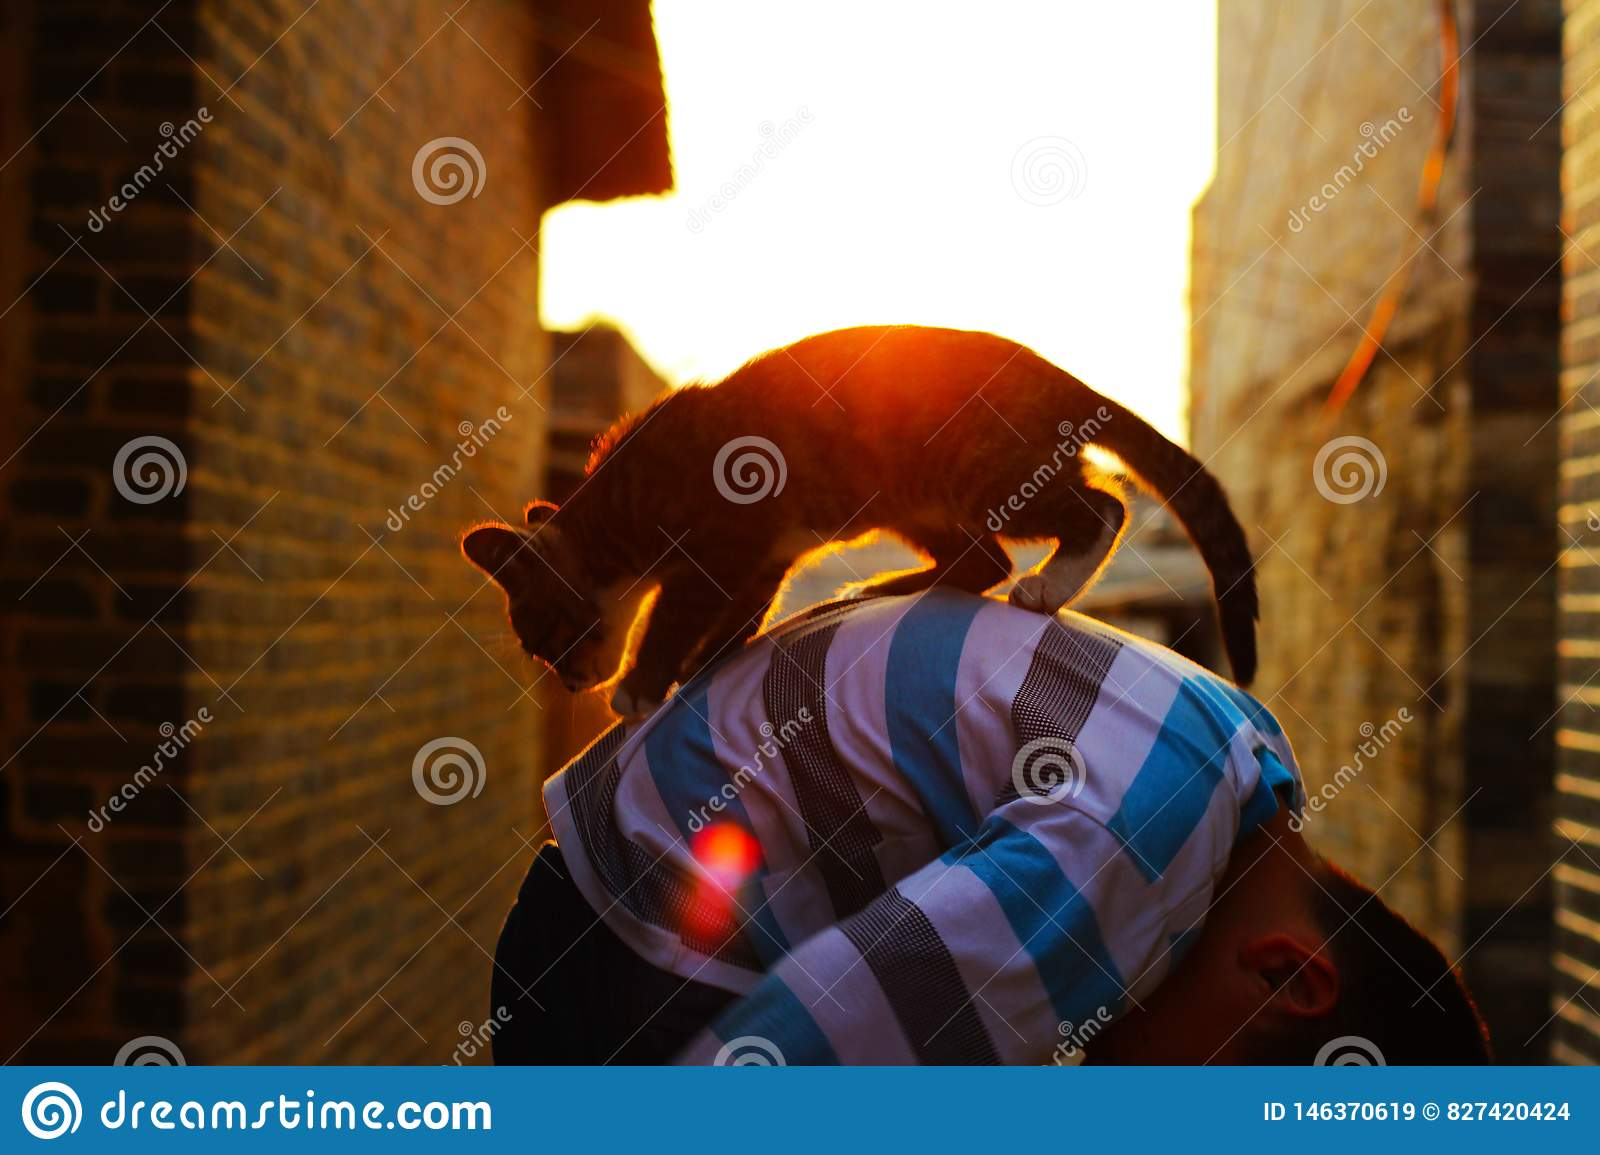 In the evening a little boy is holding a cat